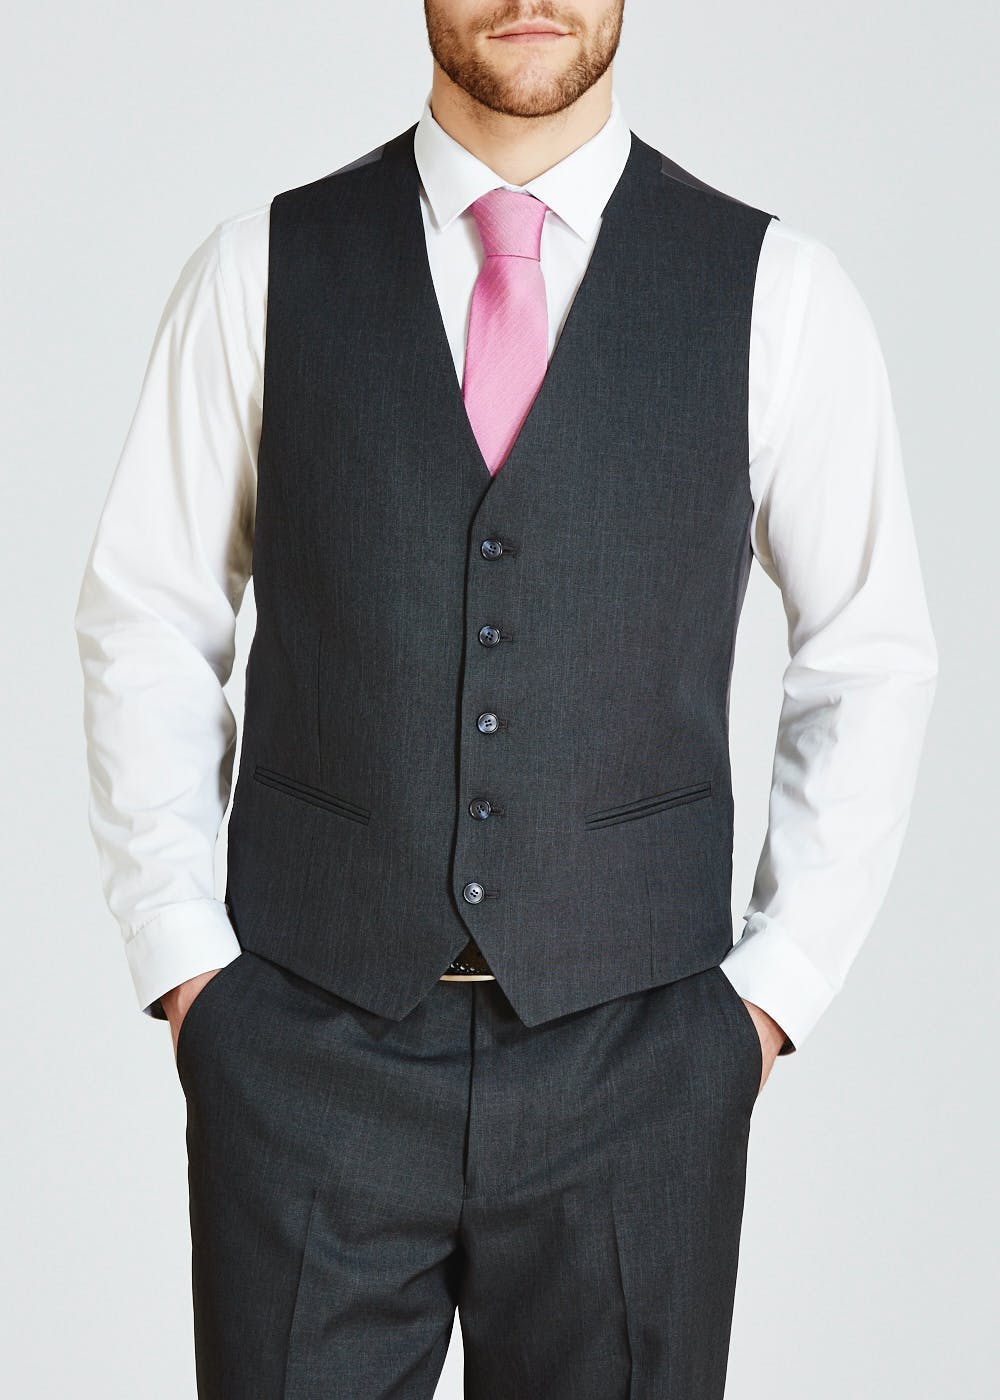 All Rembrandt hire suits, tuxedos, jackets, vests, pants and accessories are the genuine article, designed by New Zealand's leading suit specialist.